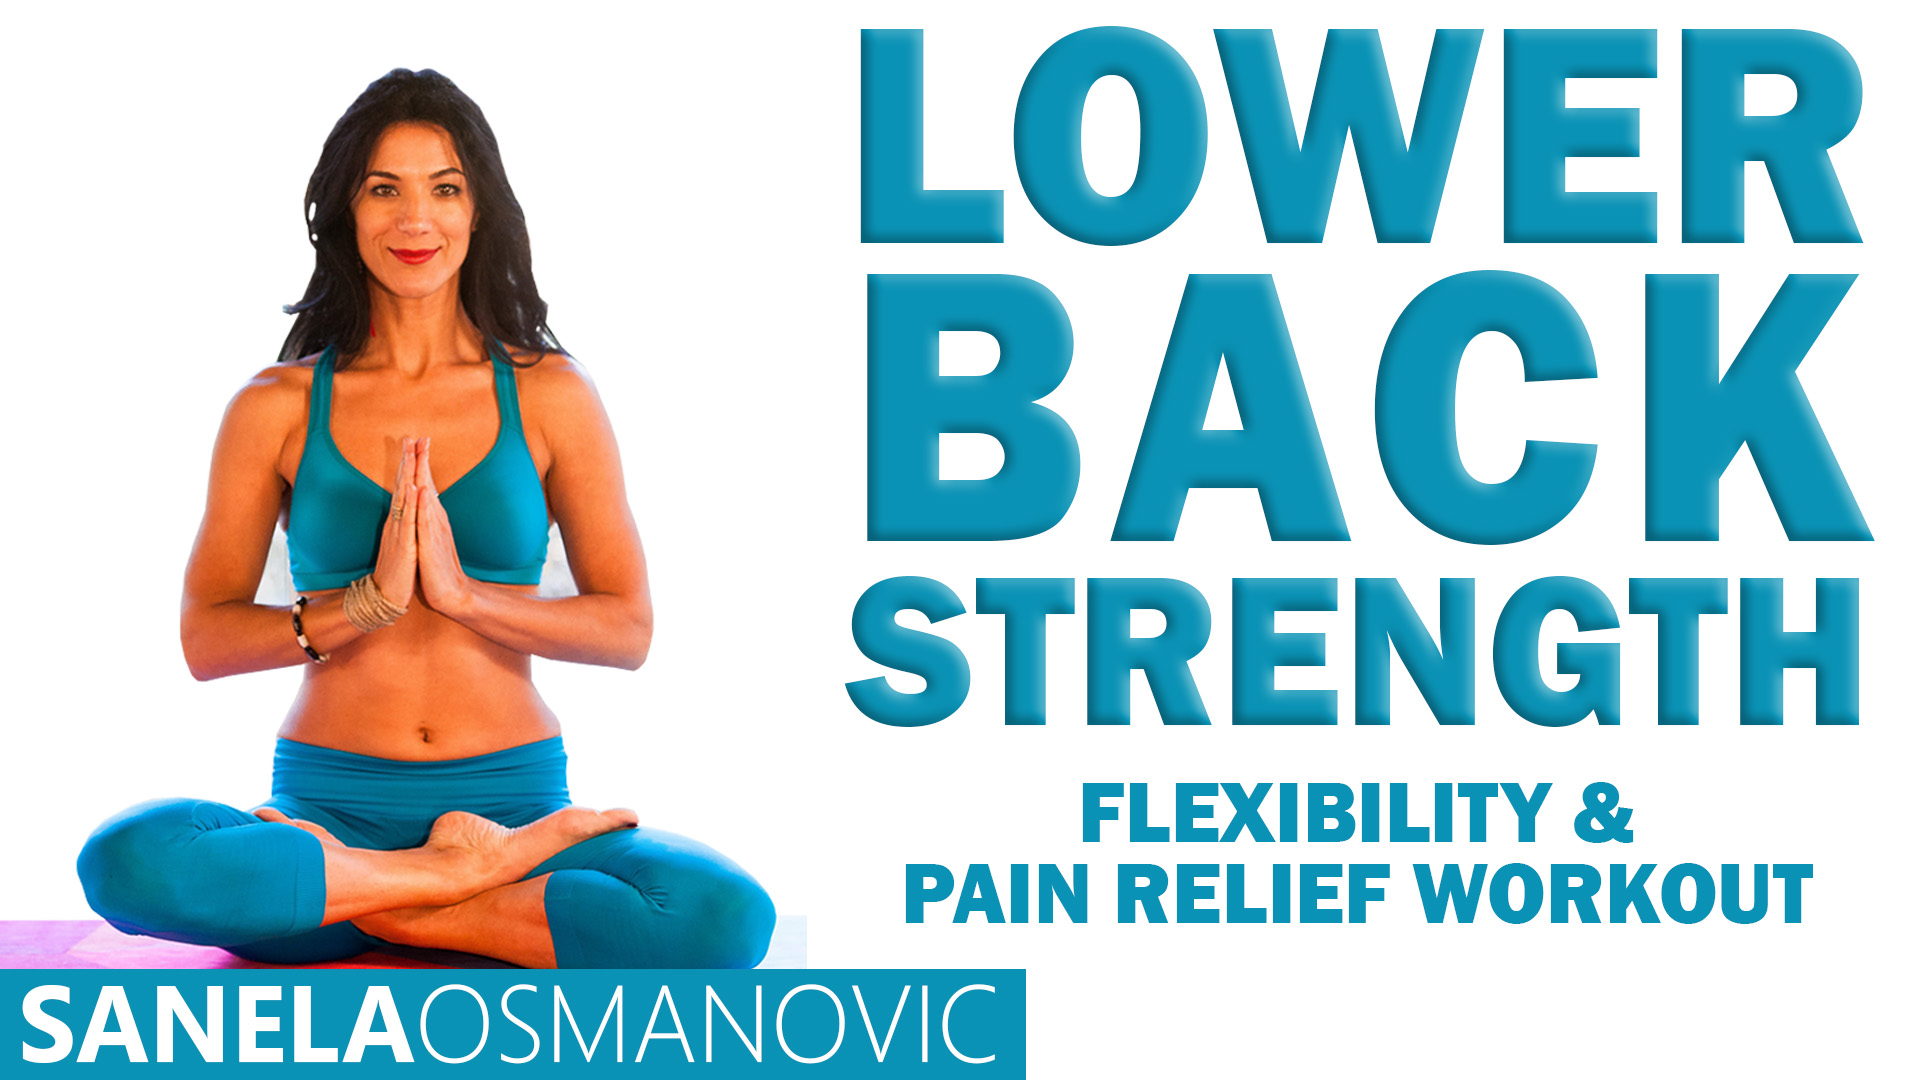 Lower Back Strength - Flexibility & Pain Relief Workout